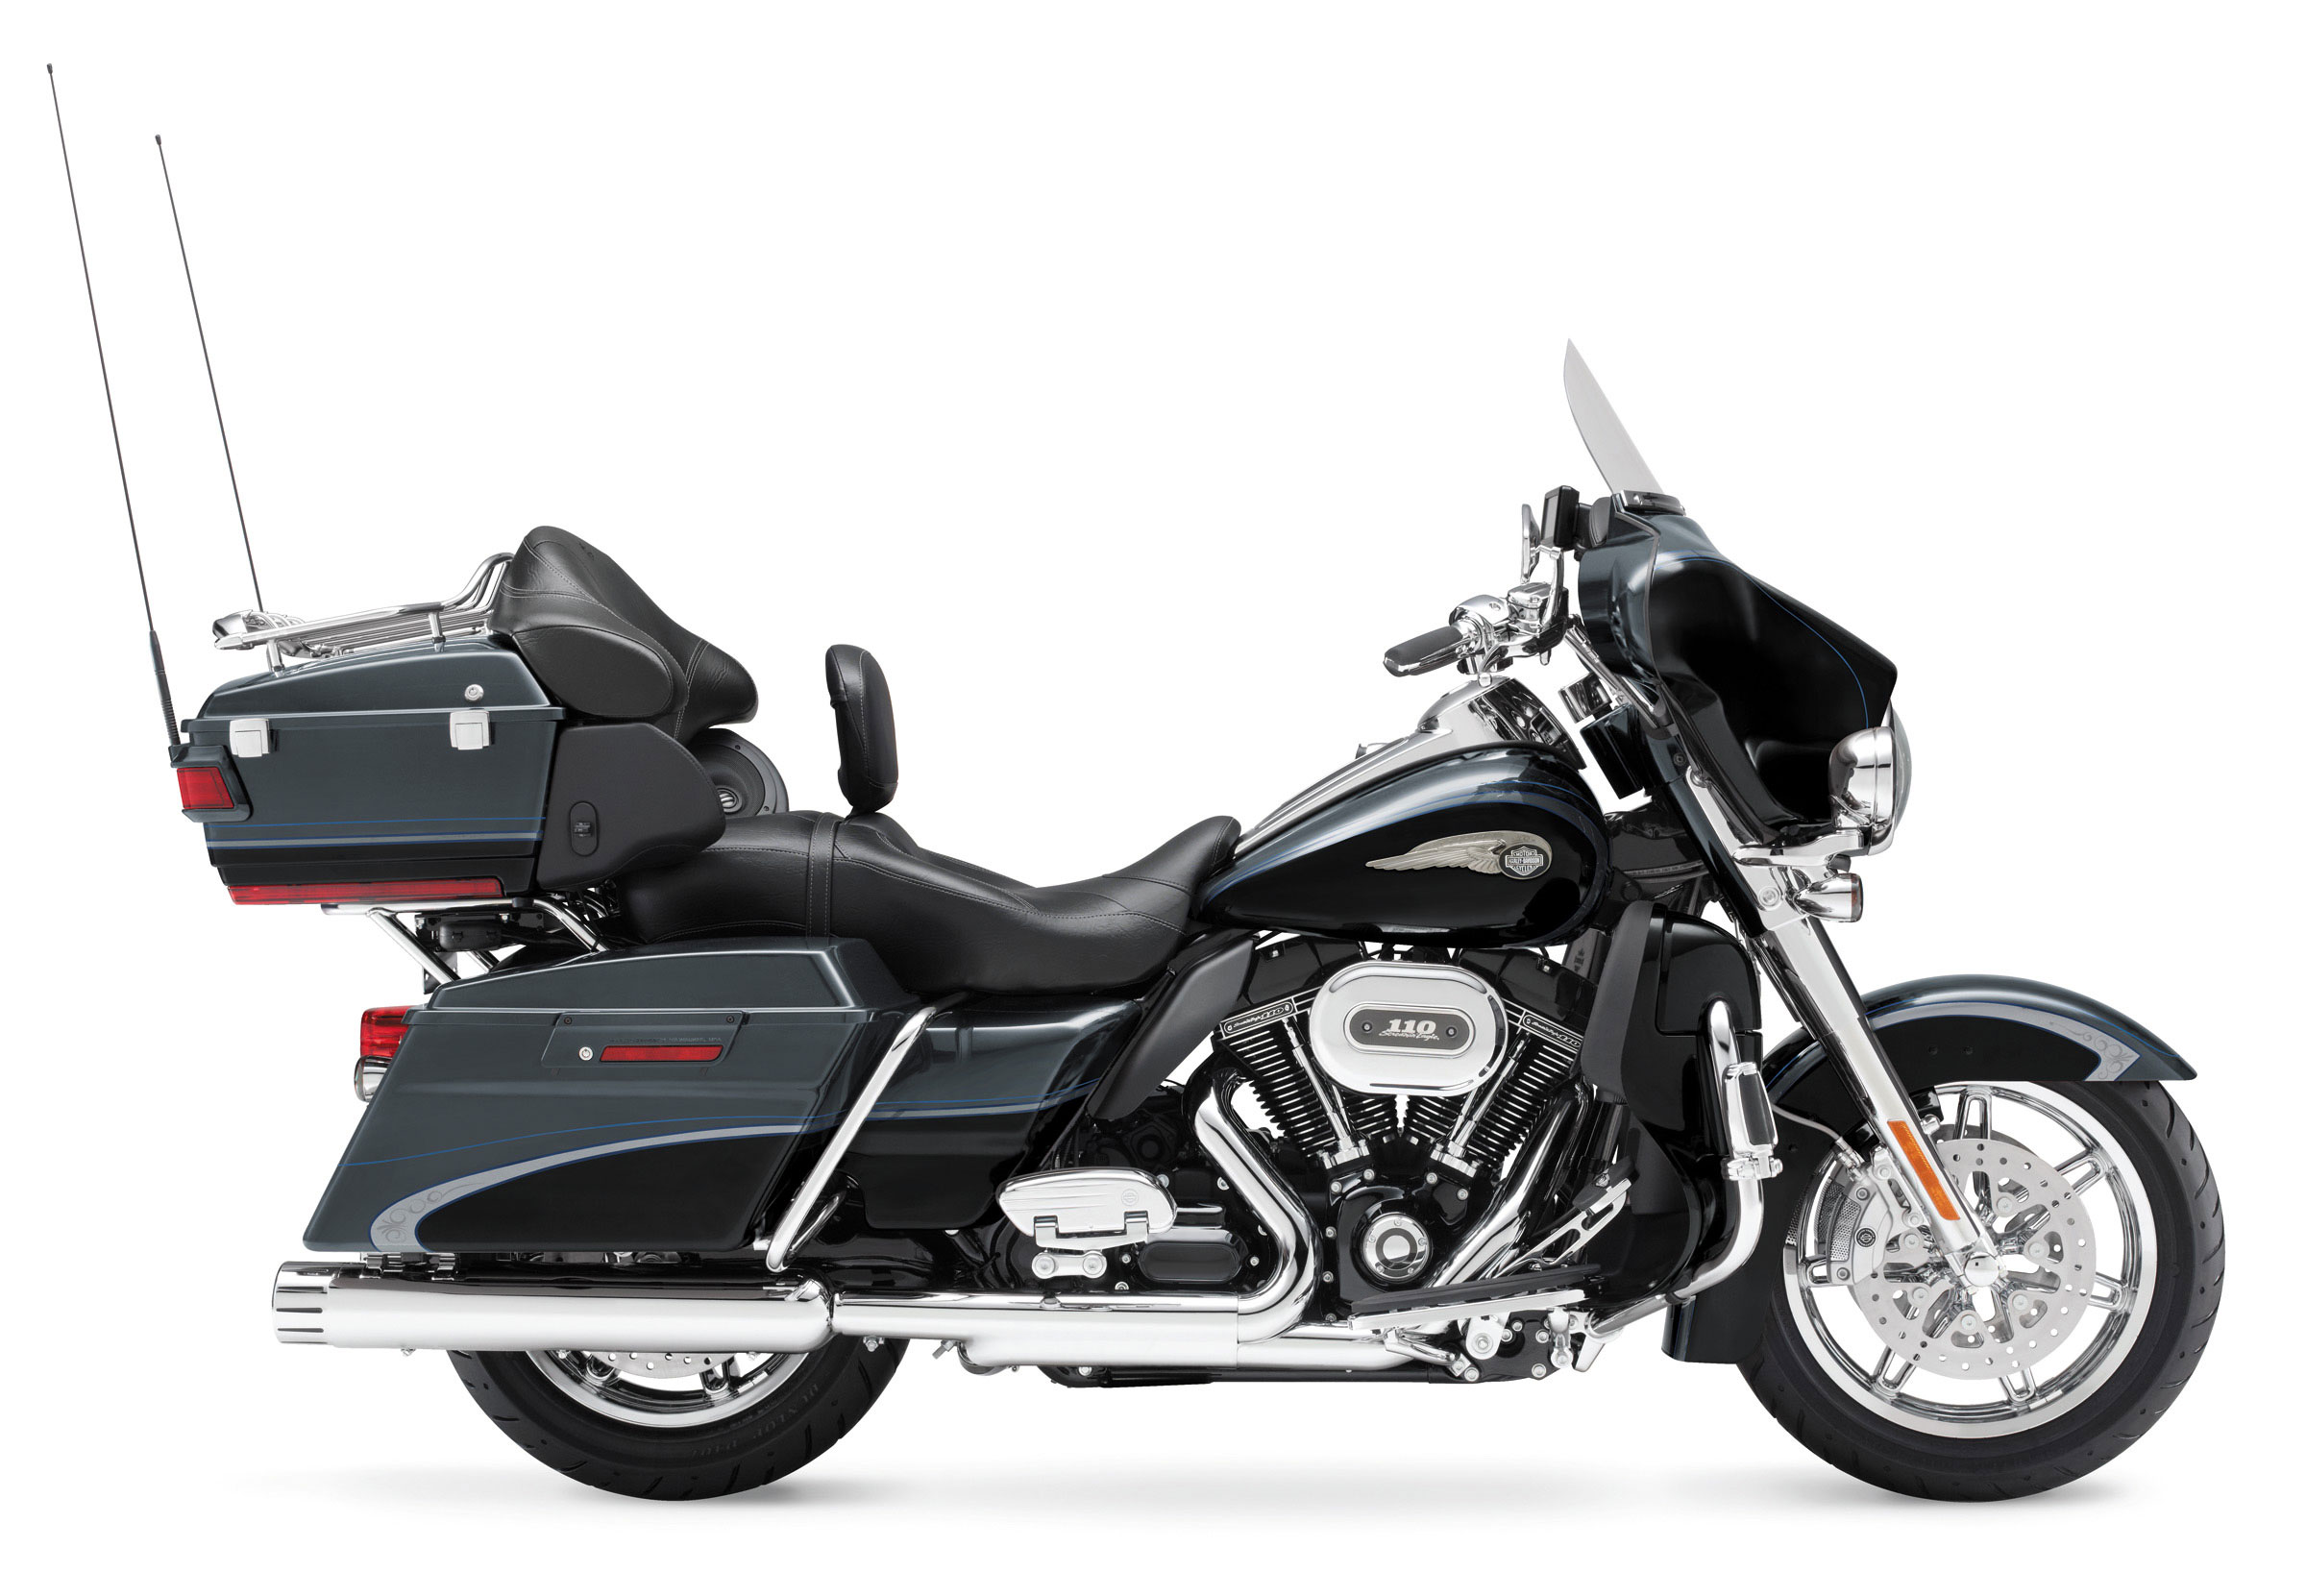 Harley Davidson Electra Glide Classic Specs